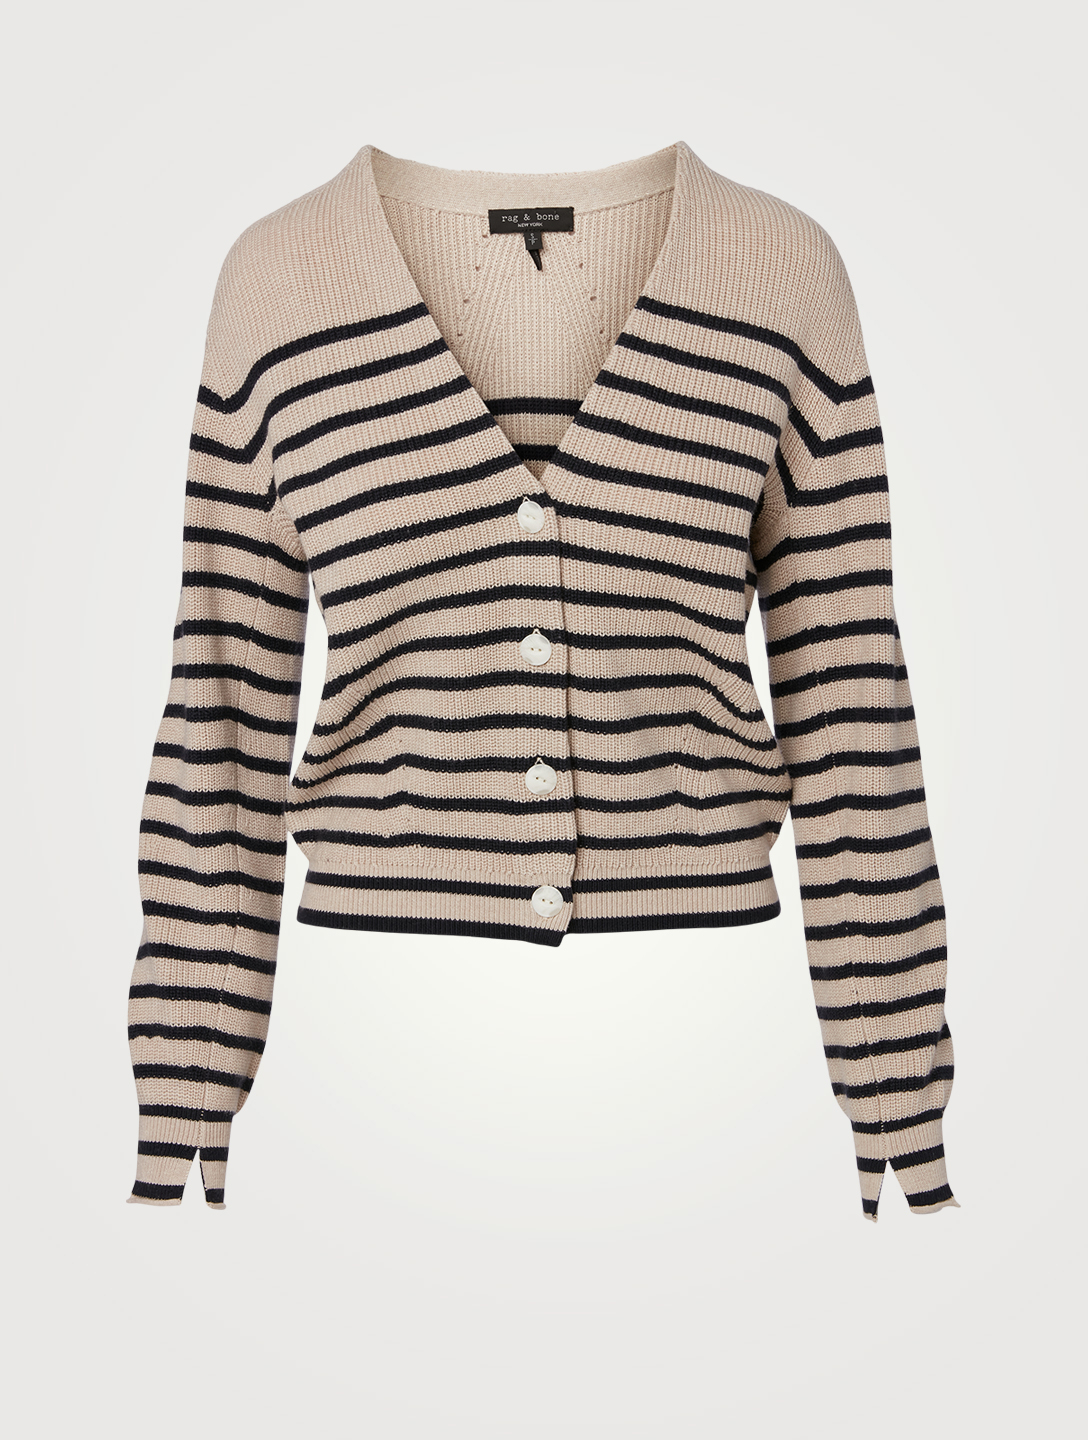 RAG & BONE Ann Cotton And Cashmere Cardigan In Striped Print Women's Neutral